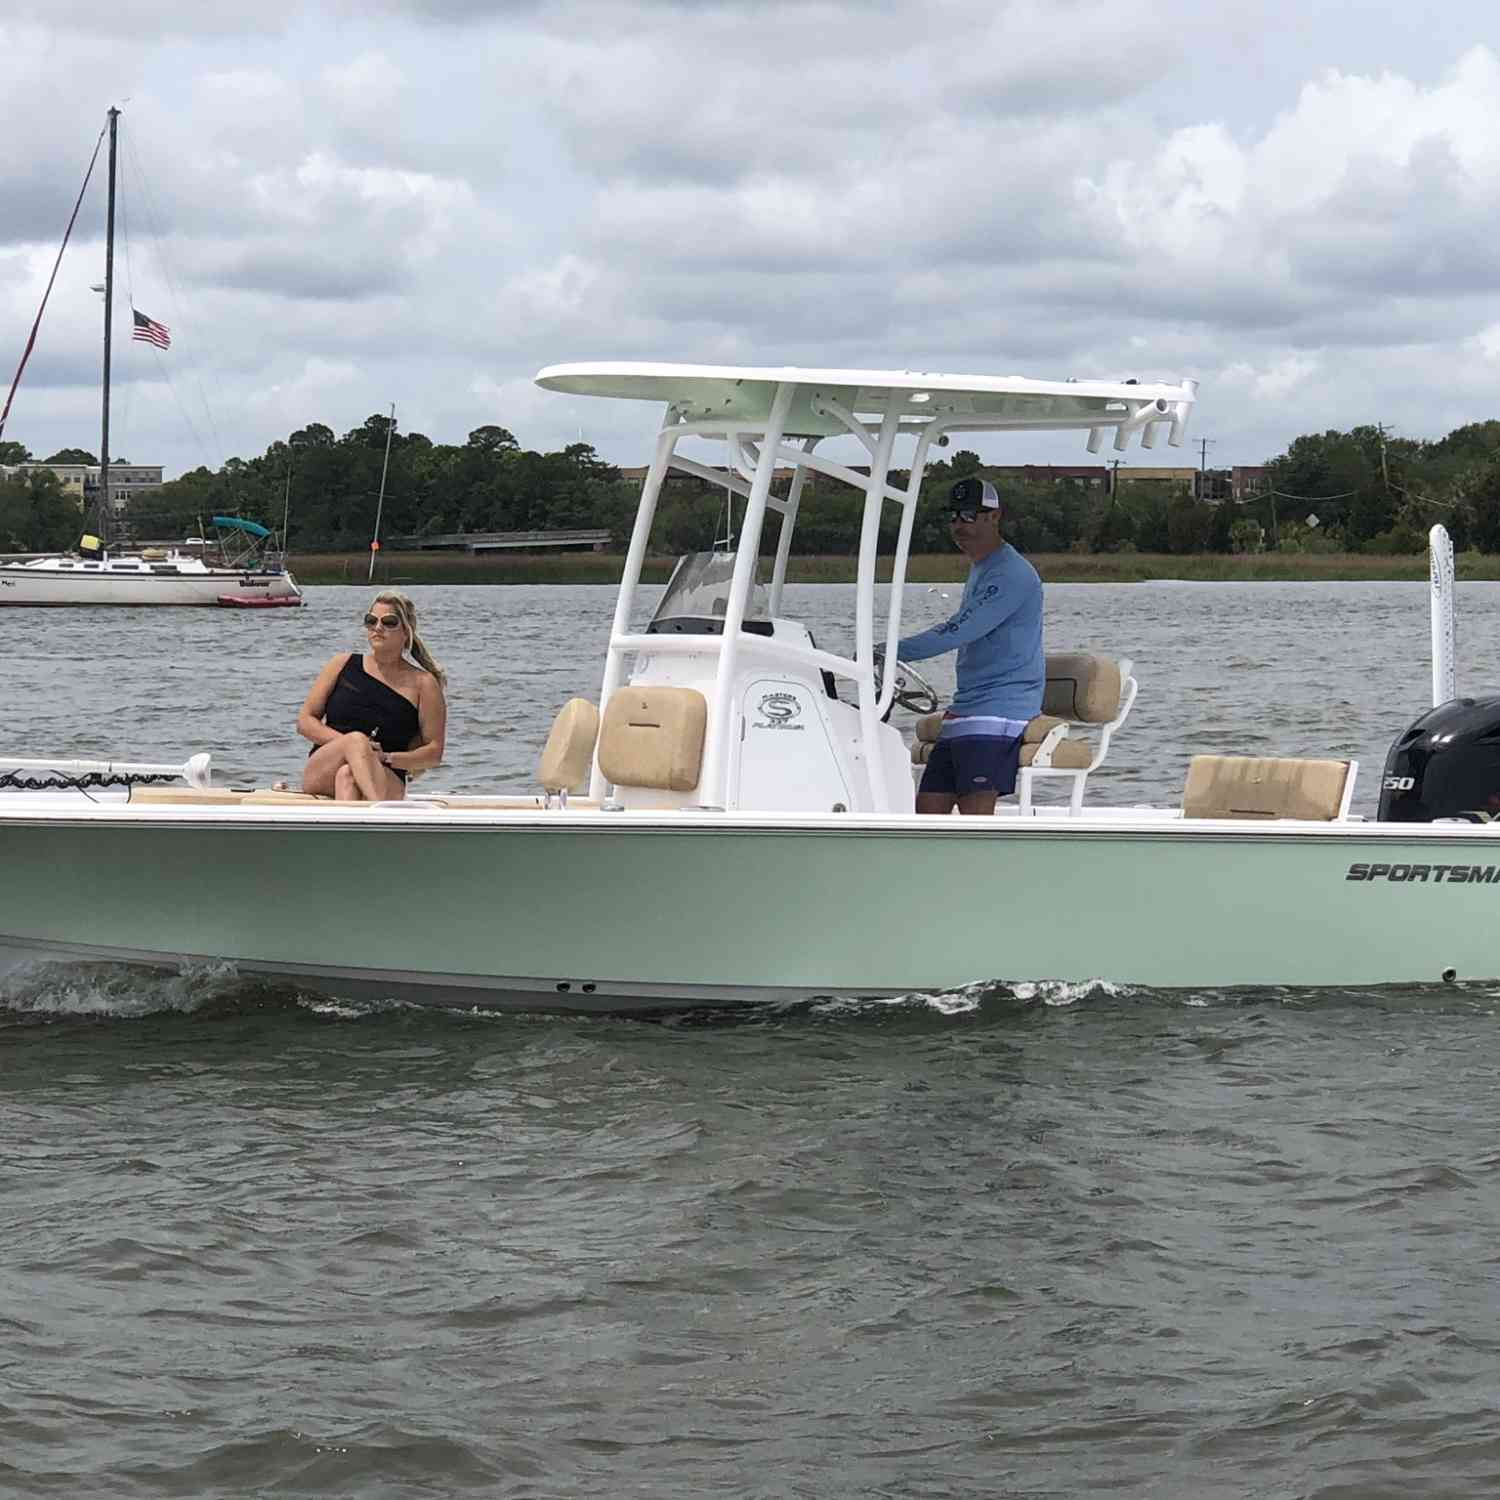 Title: Cruising in the harbor - On board their Sportsman Masters 227 Bay Boat - Location: Charleston, SC. Participating in the Photo Contest #SportsmanJune2019